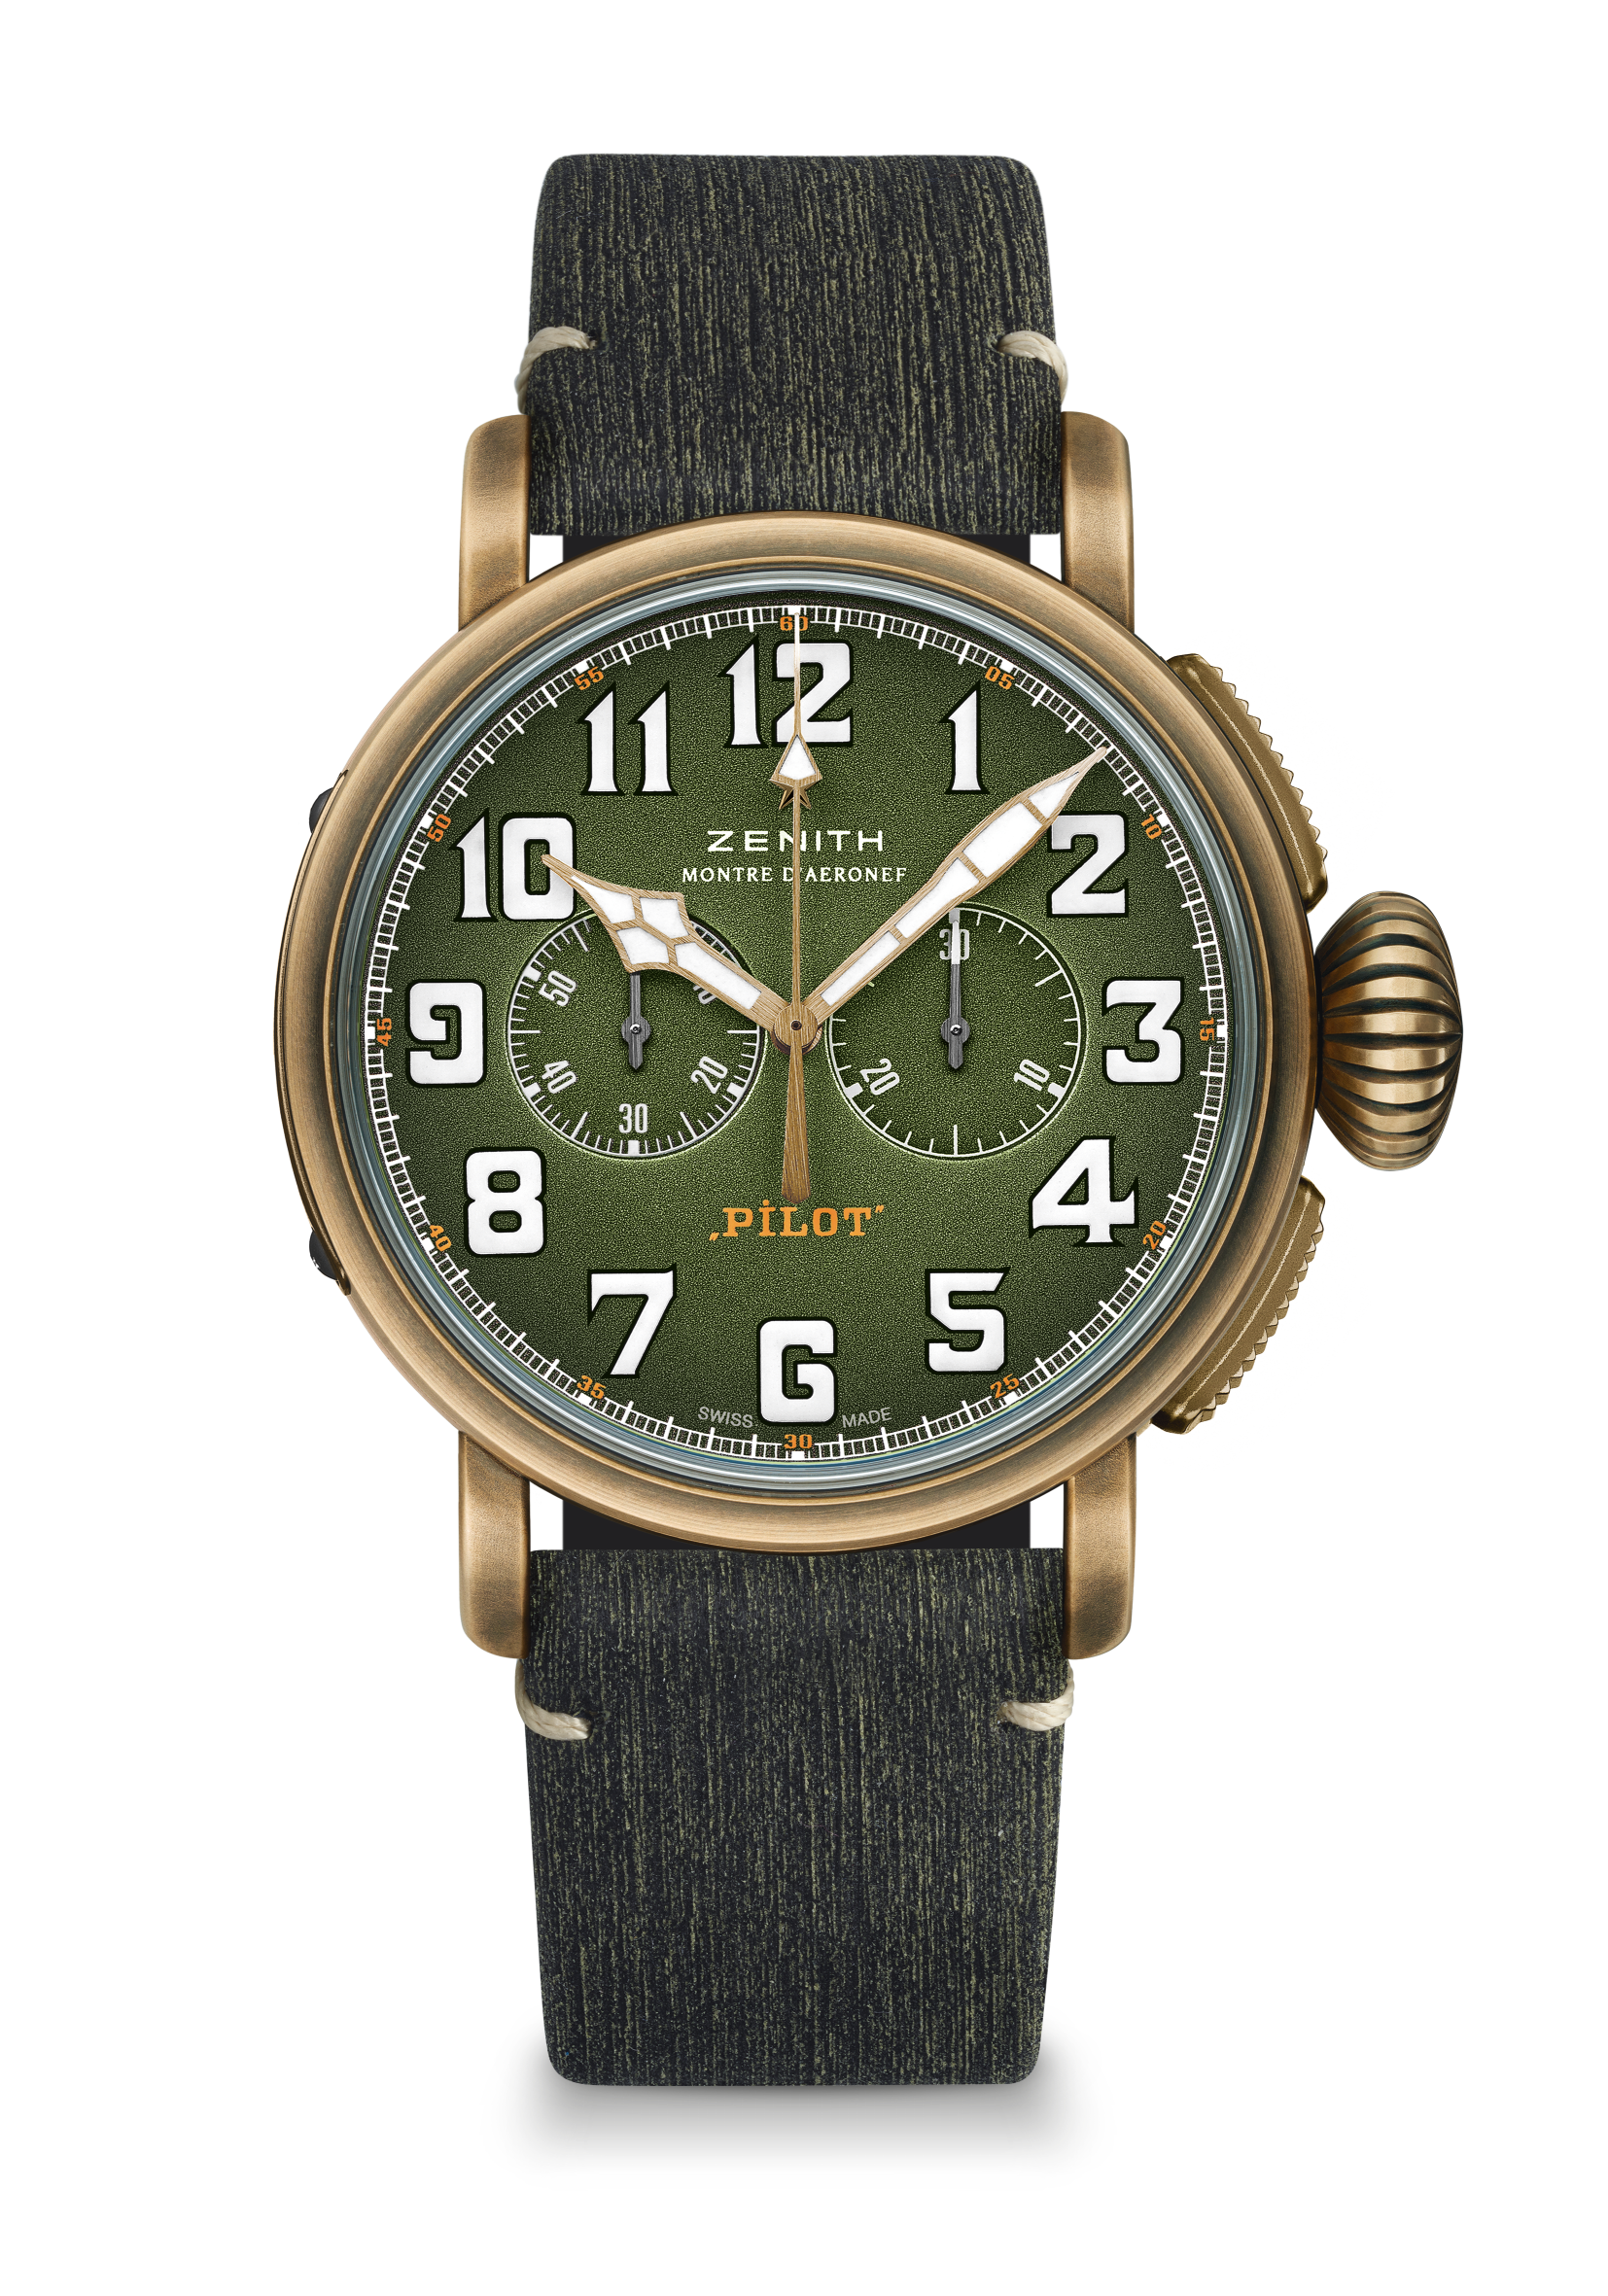 ZENITH_Pilot Type 20 Chronograph Adventure matrix bracelet